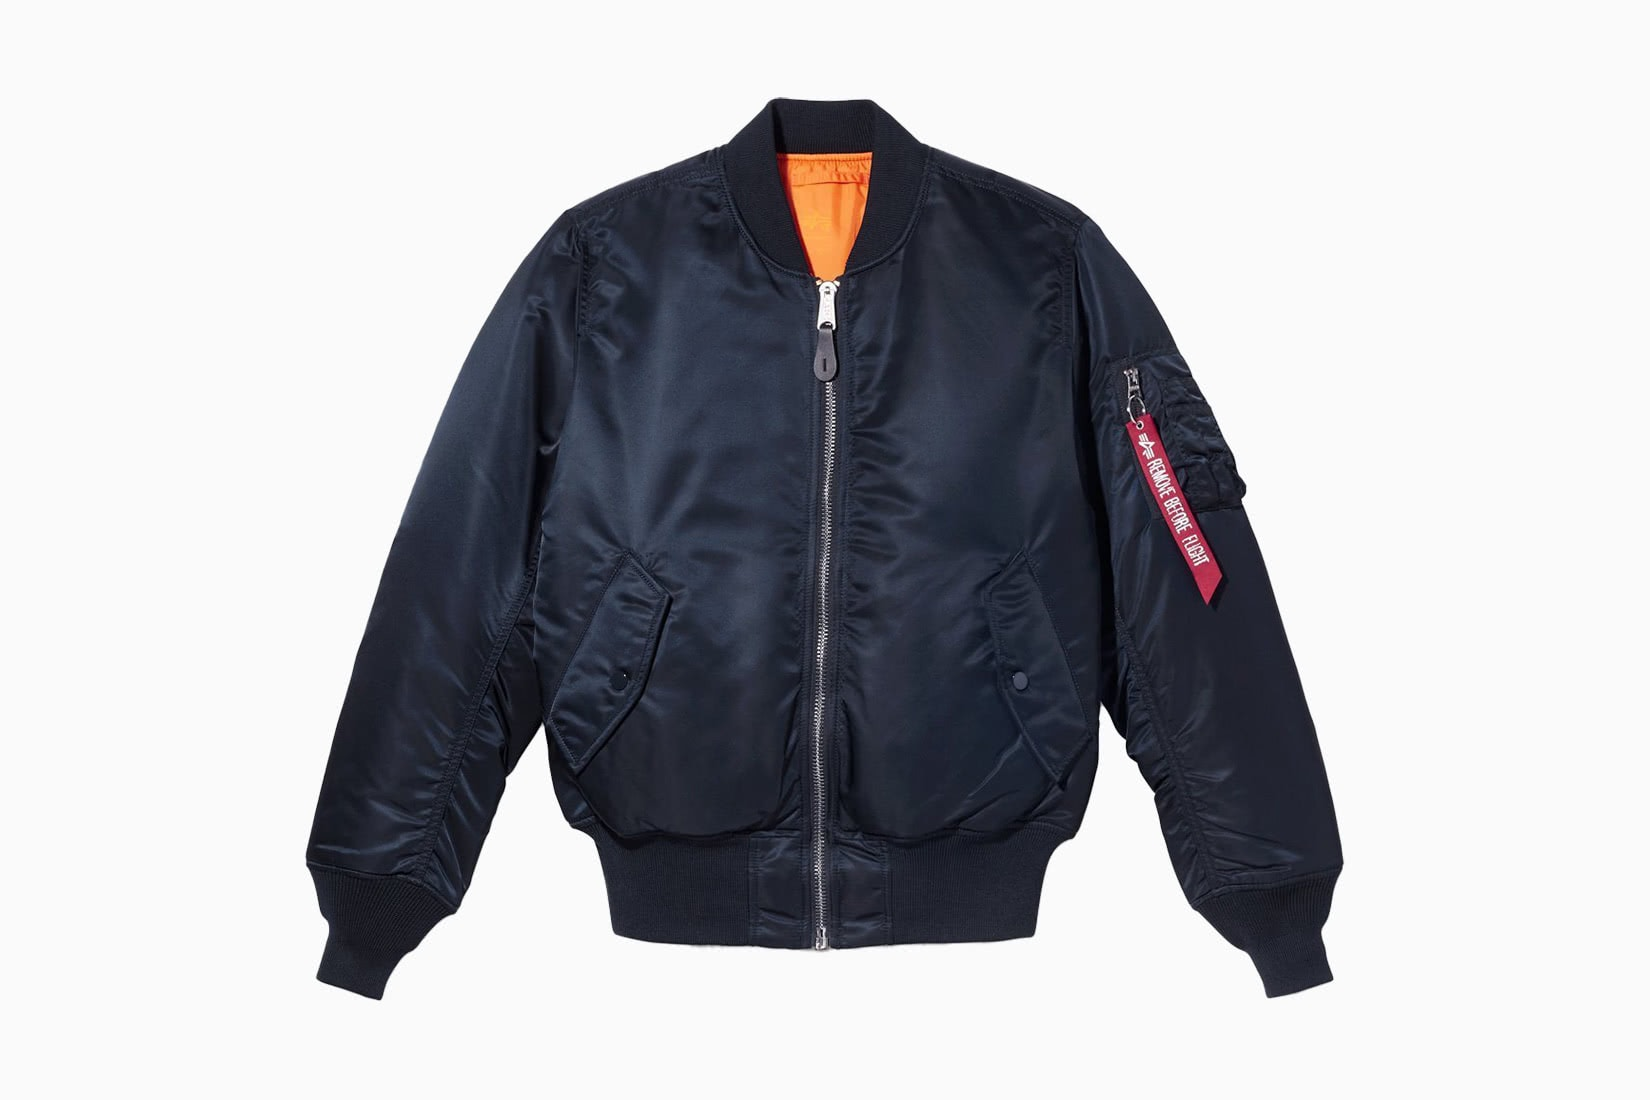 best men bomber jacket Alpha Industries MA-1 review - Luxe Digital